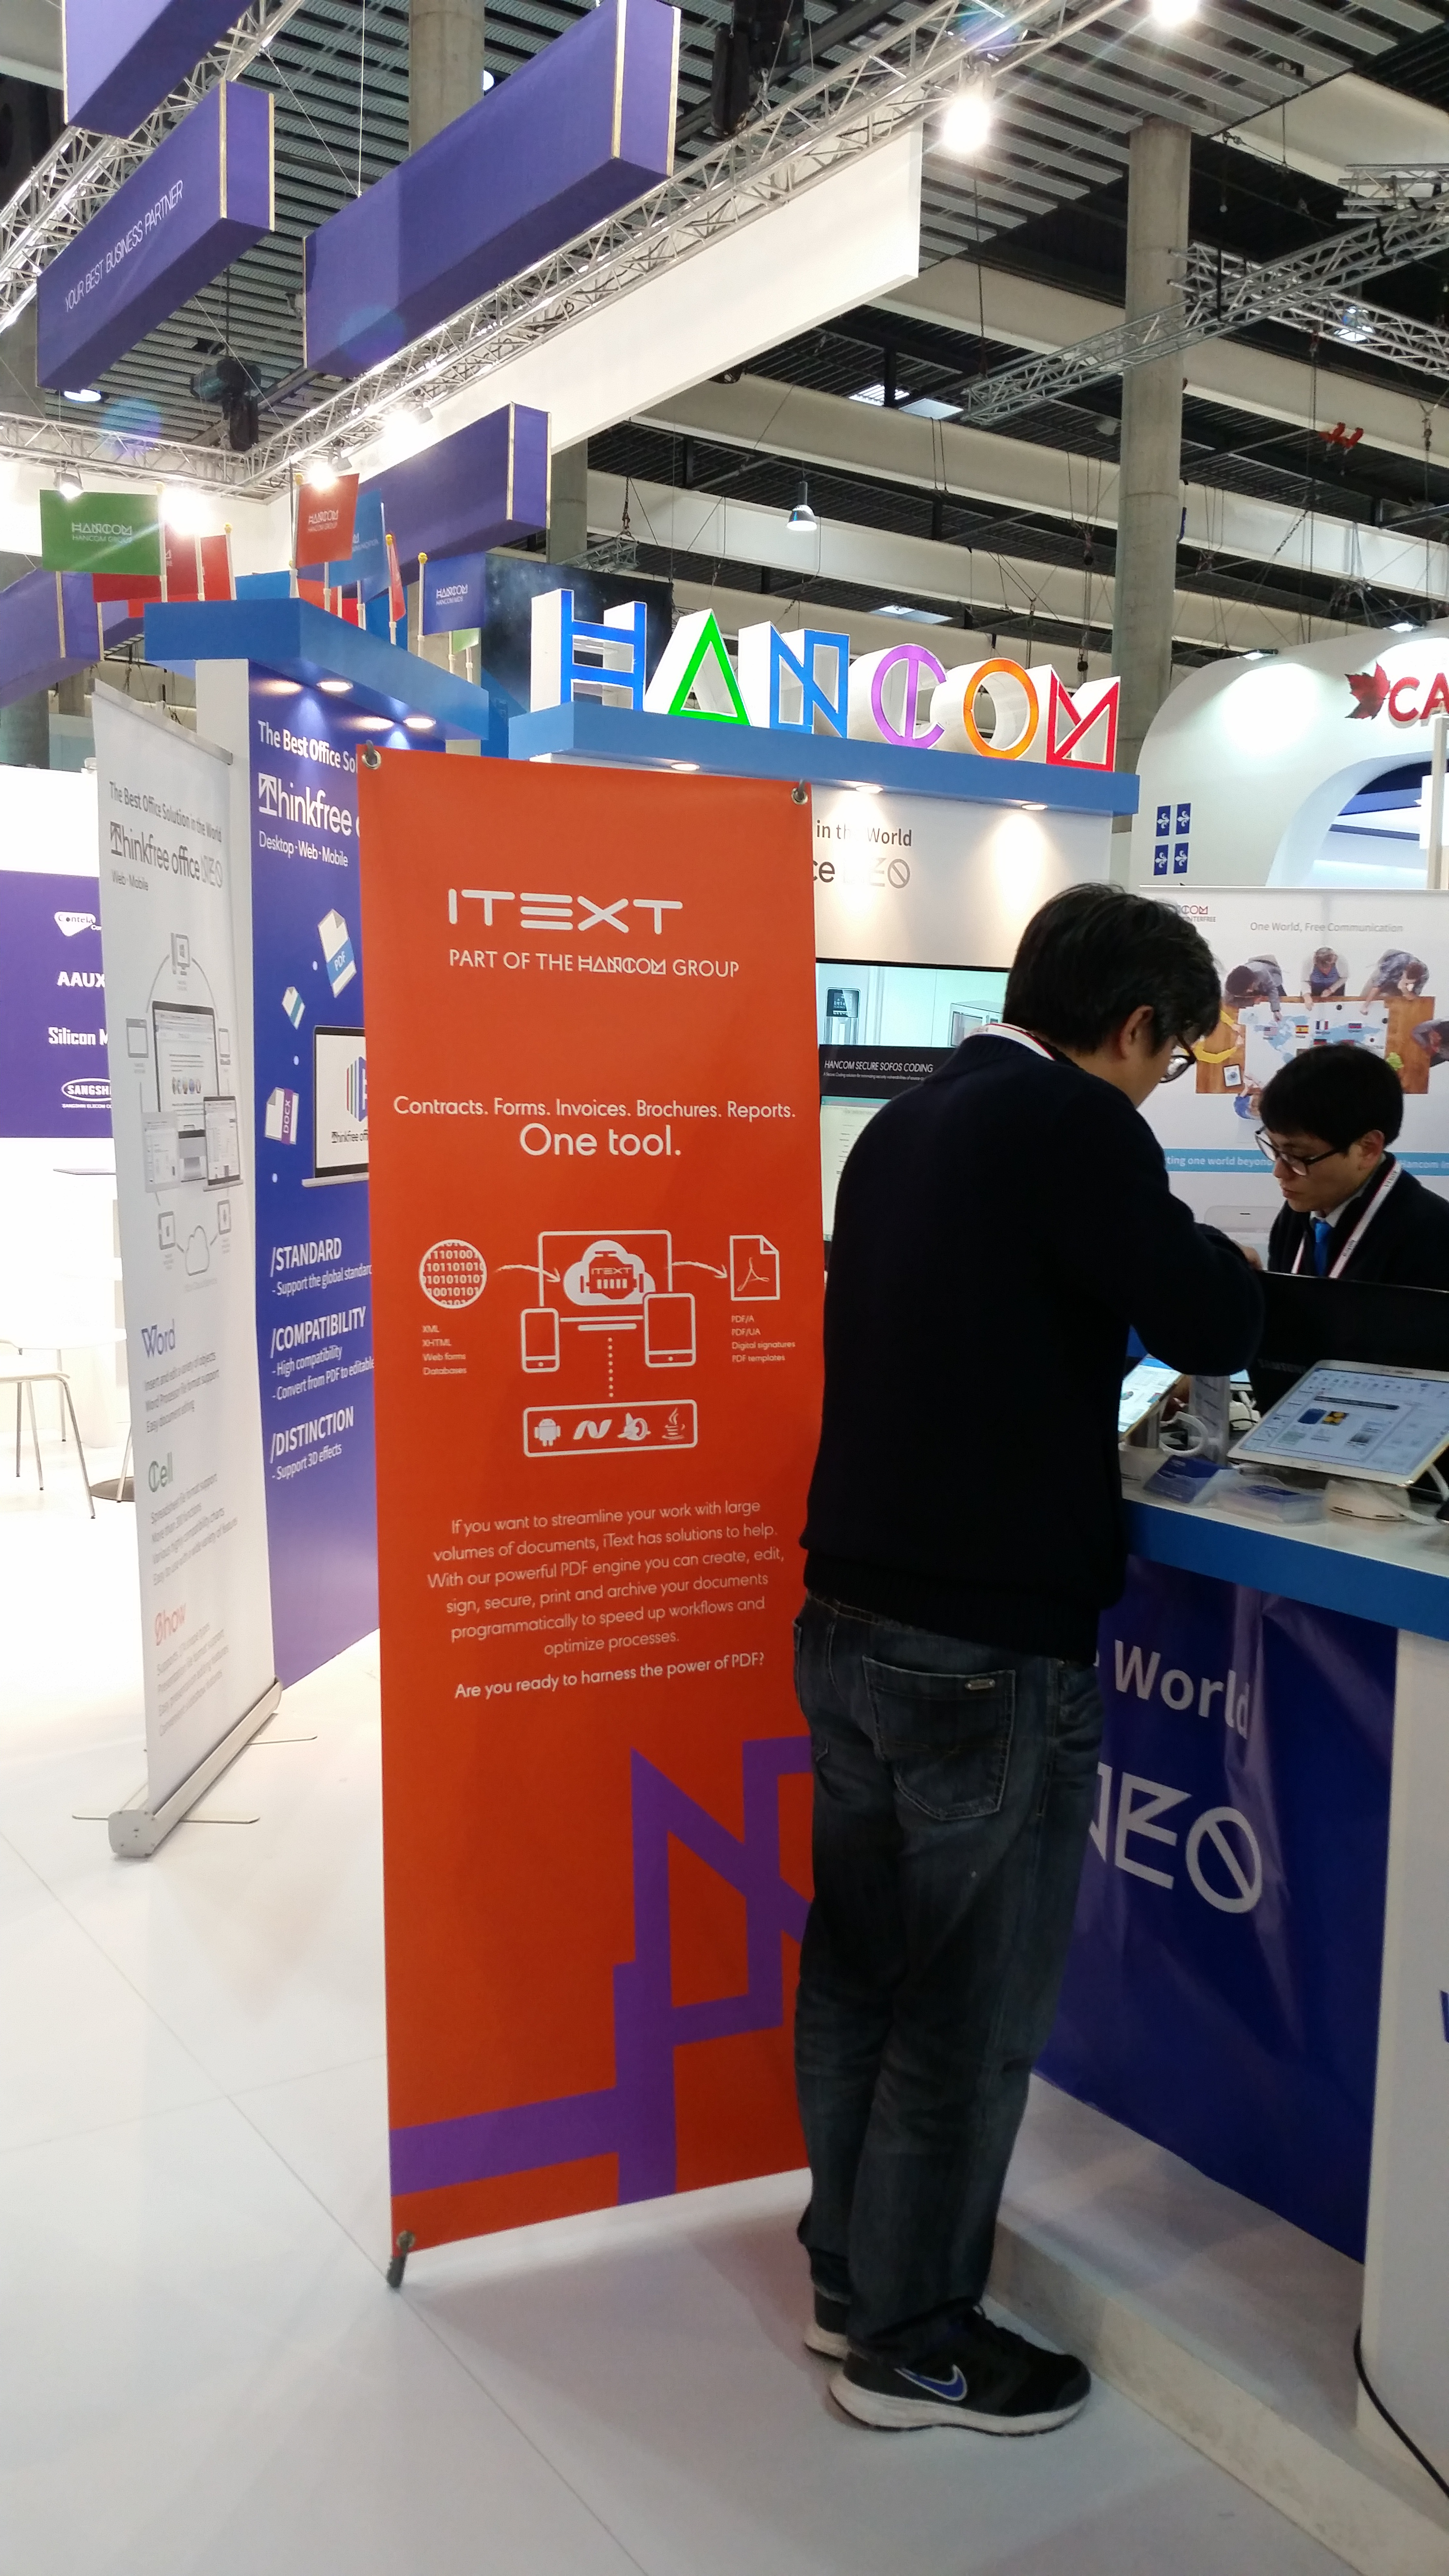 iText - Thinkfree - Hancom booth